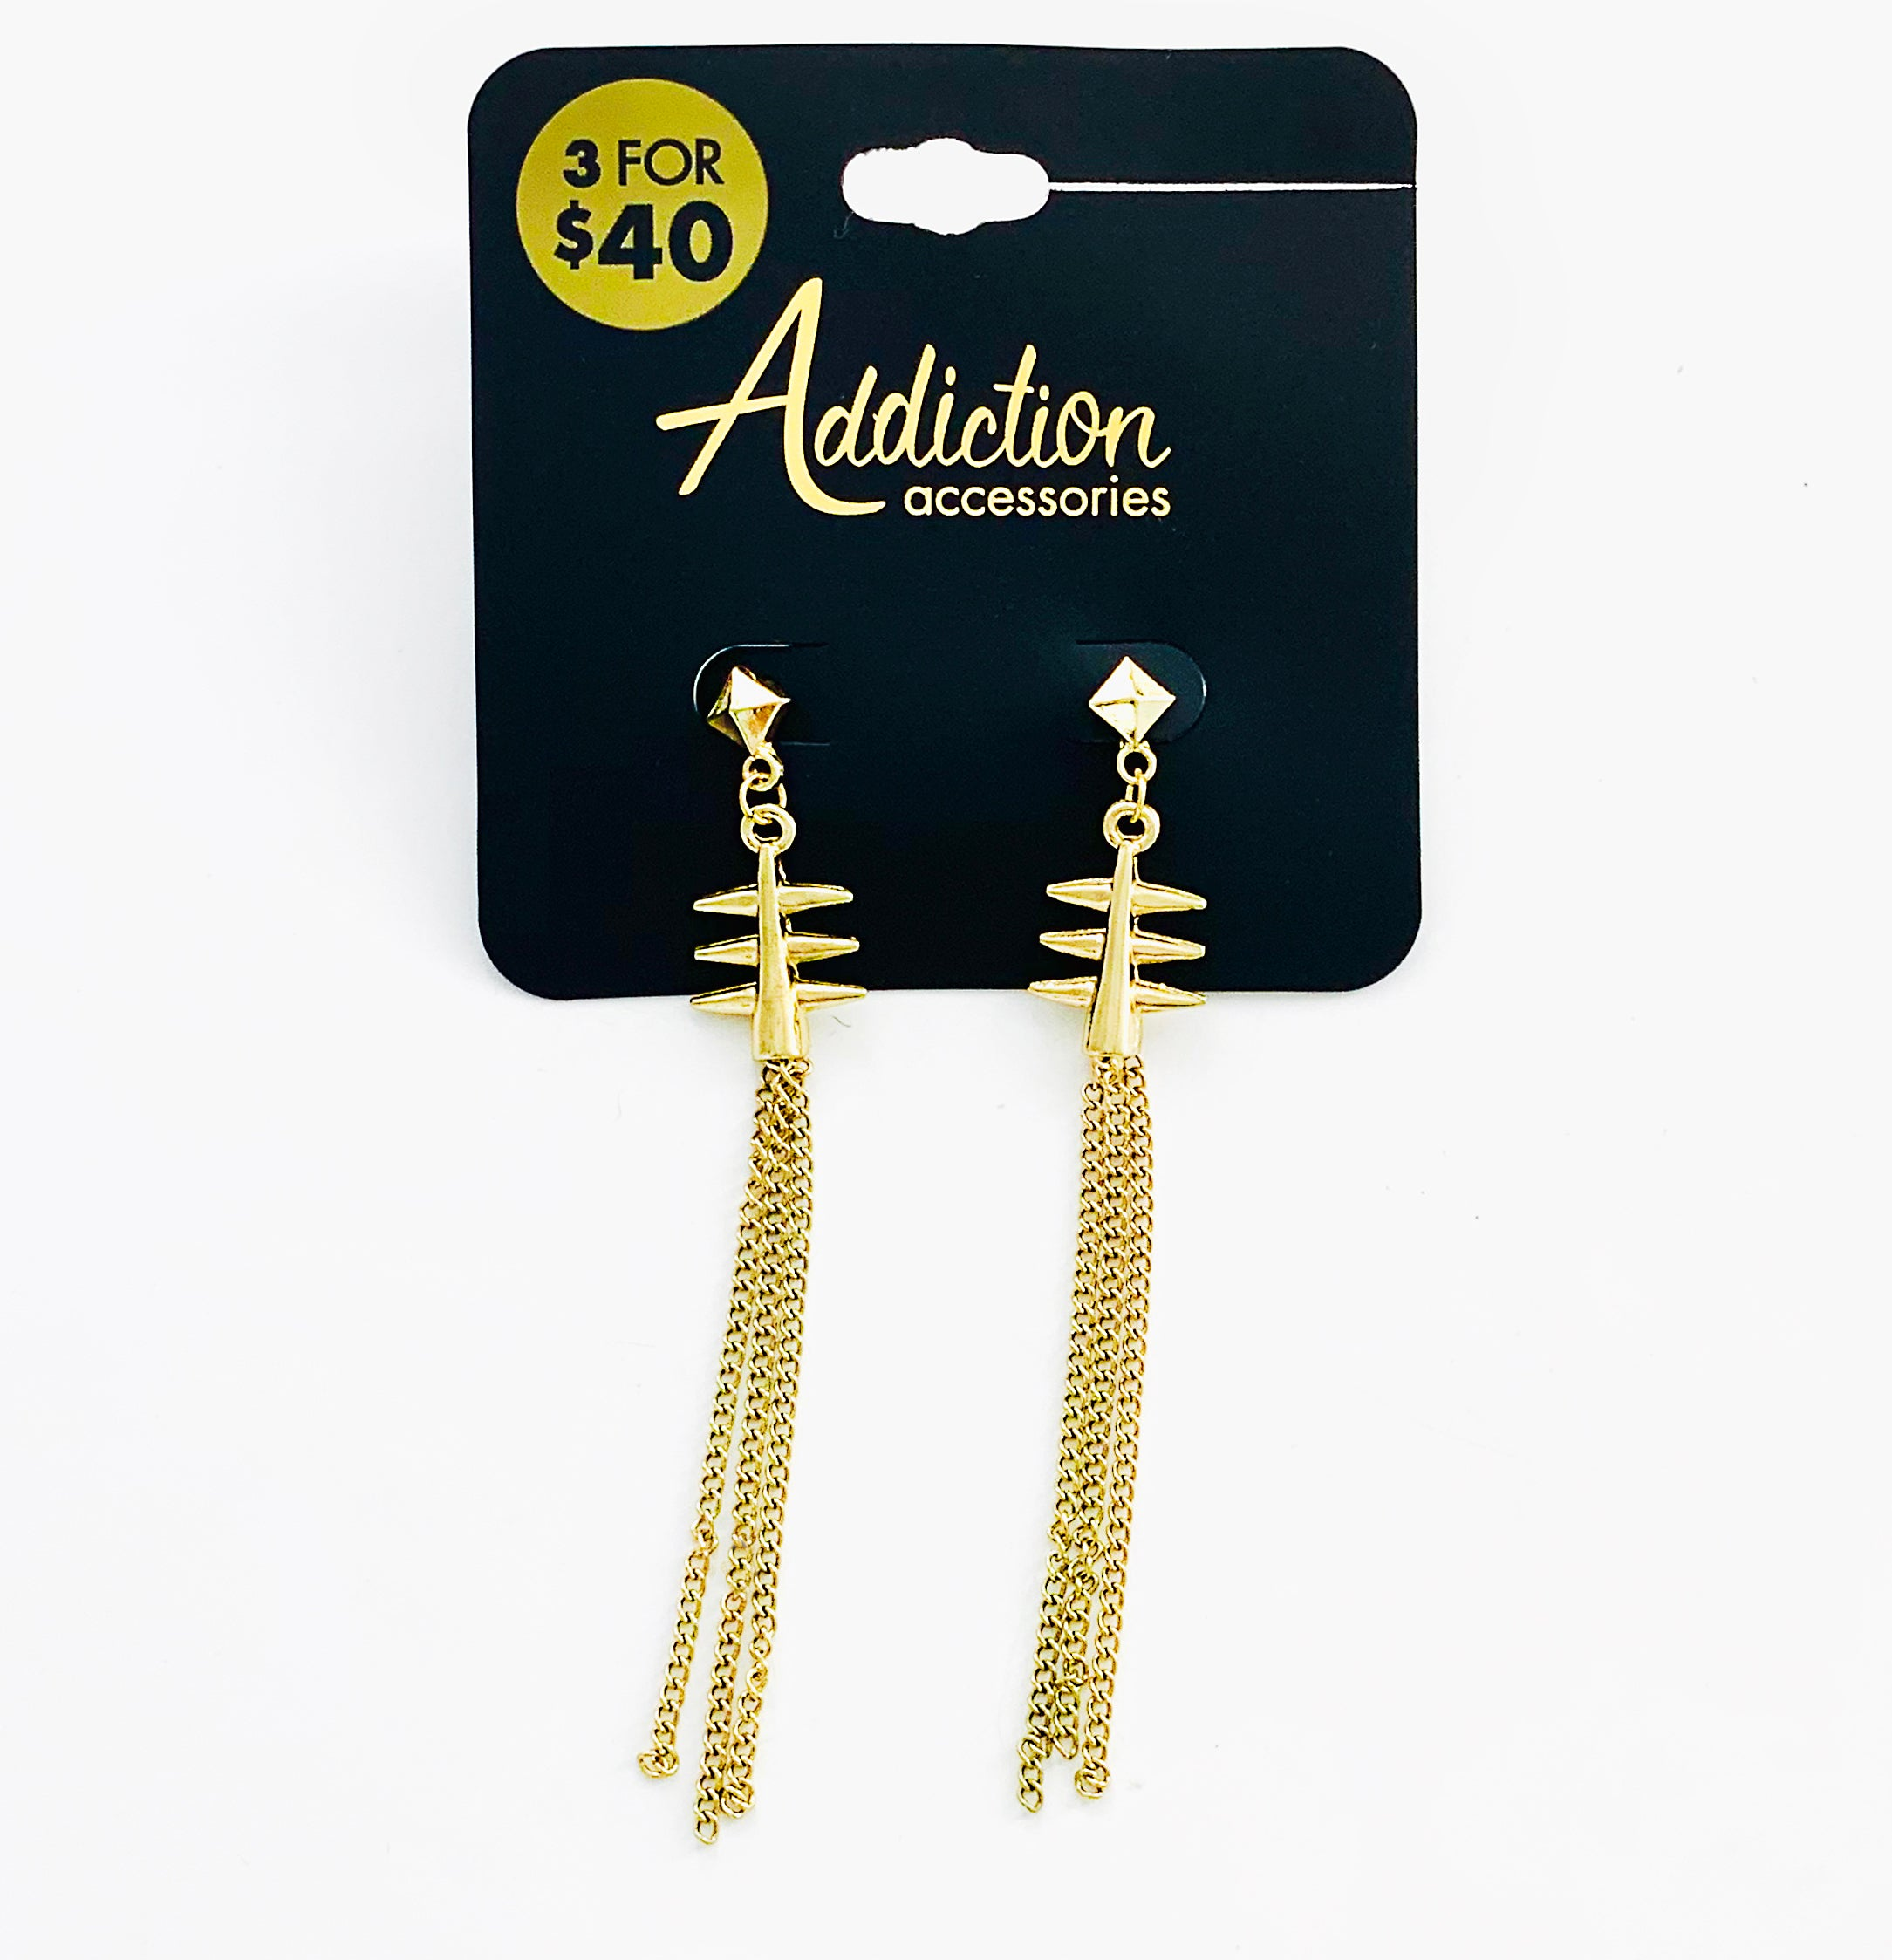 Gold fishbone earrings with dangling chains